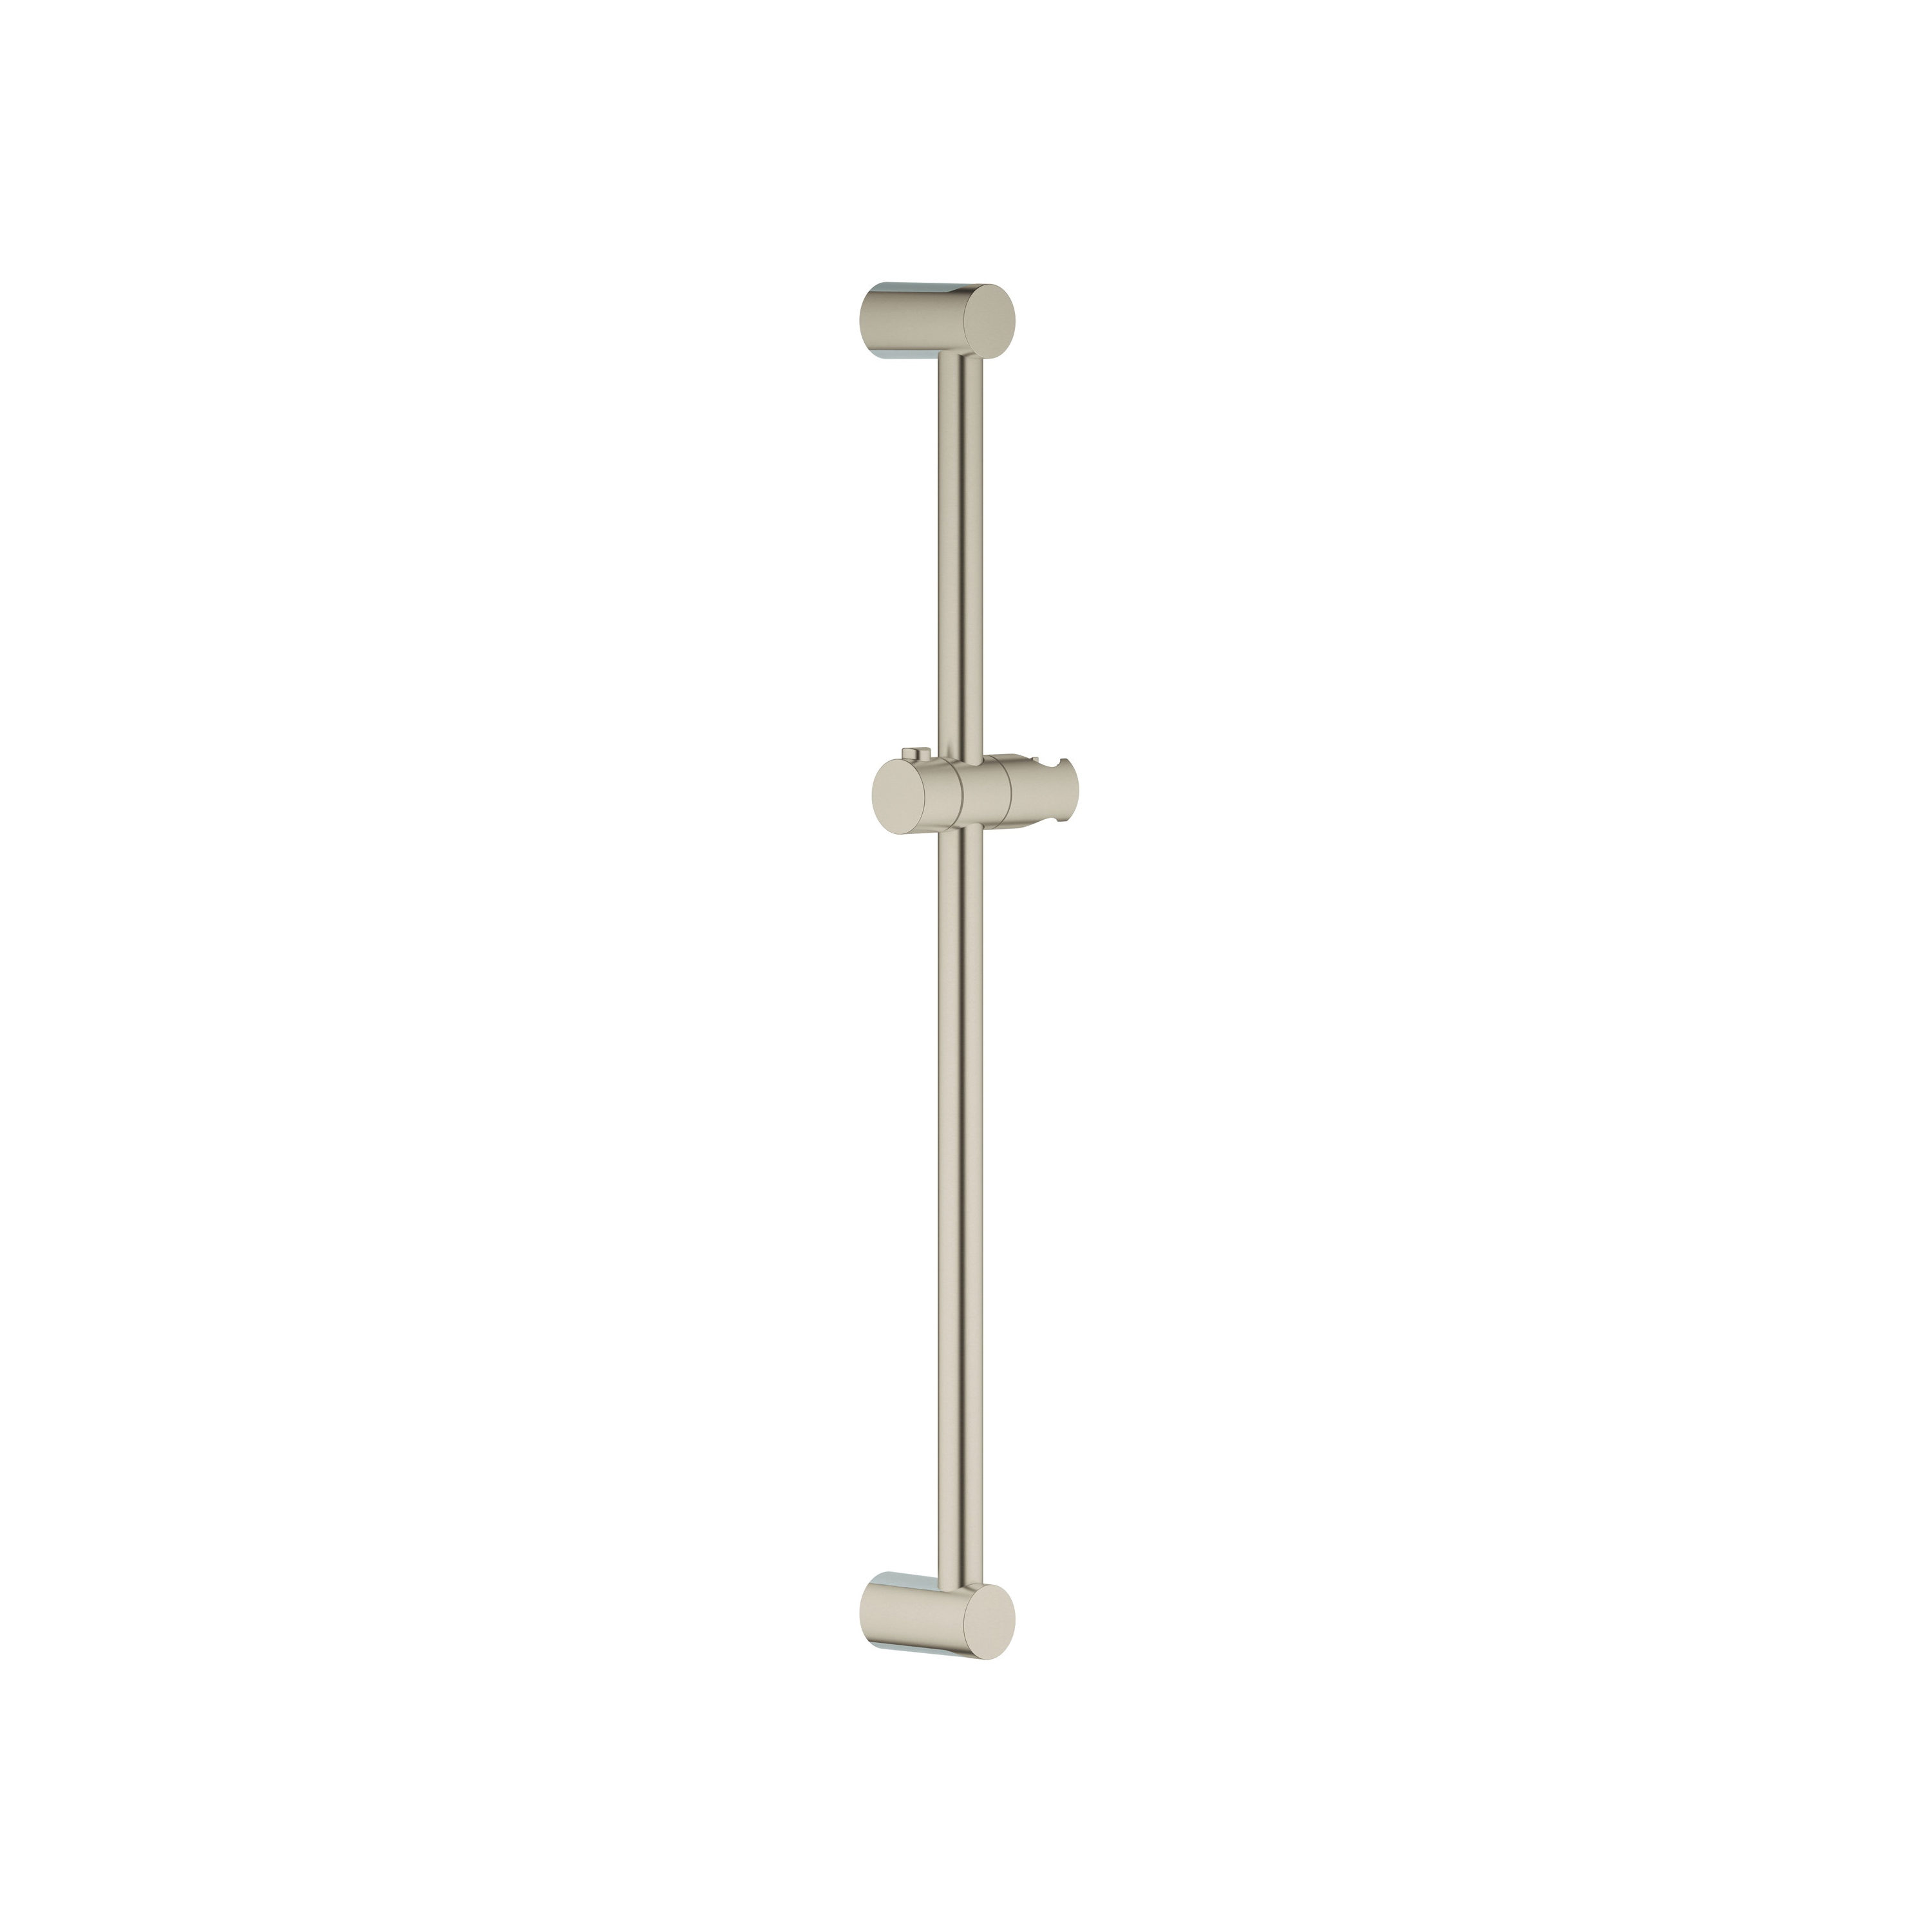 GROHE 27521EN0 New Tempesta® Cosmopolitan Shower Bar, 24 in L Bar, 2-3/4 in OAD, Brass, Brushed Nickel, Import